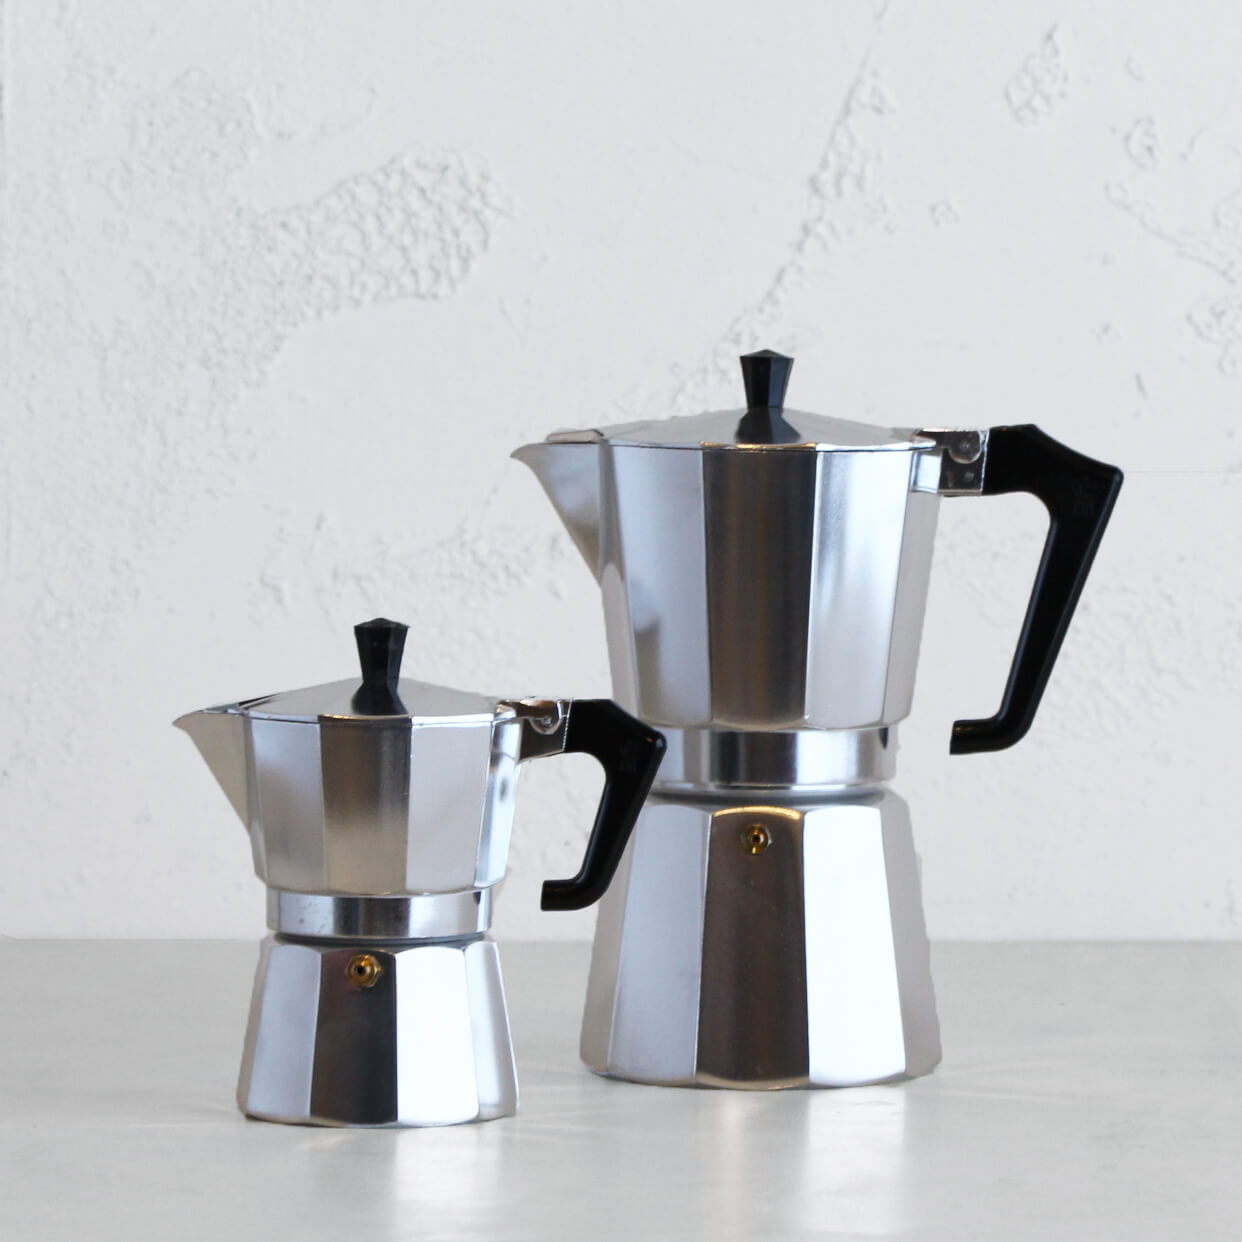 PEZZETTI ITALEXPRESS ITALIAN COFFEE MAKER  |  3 + 9 CUP PACKAGE  |  STEEL